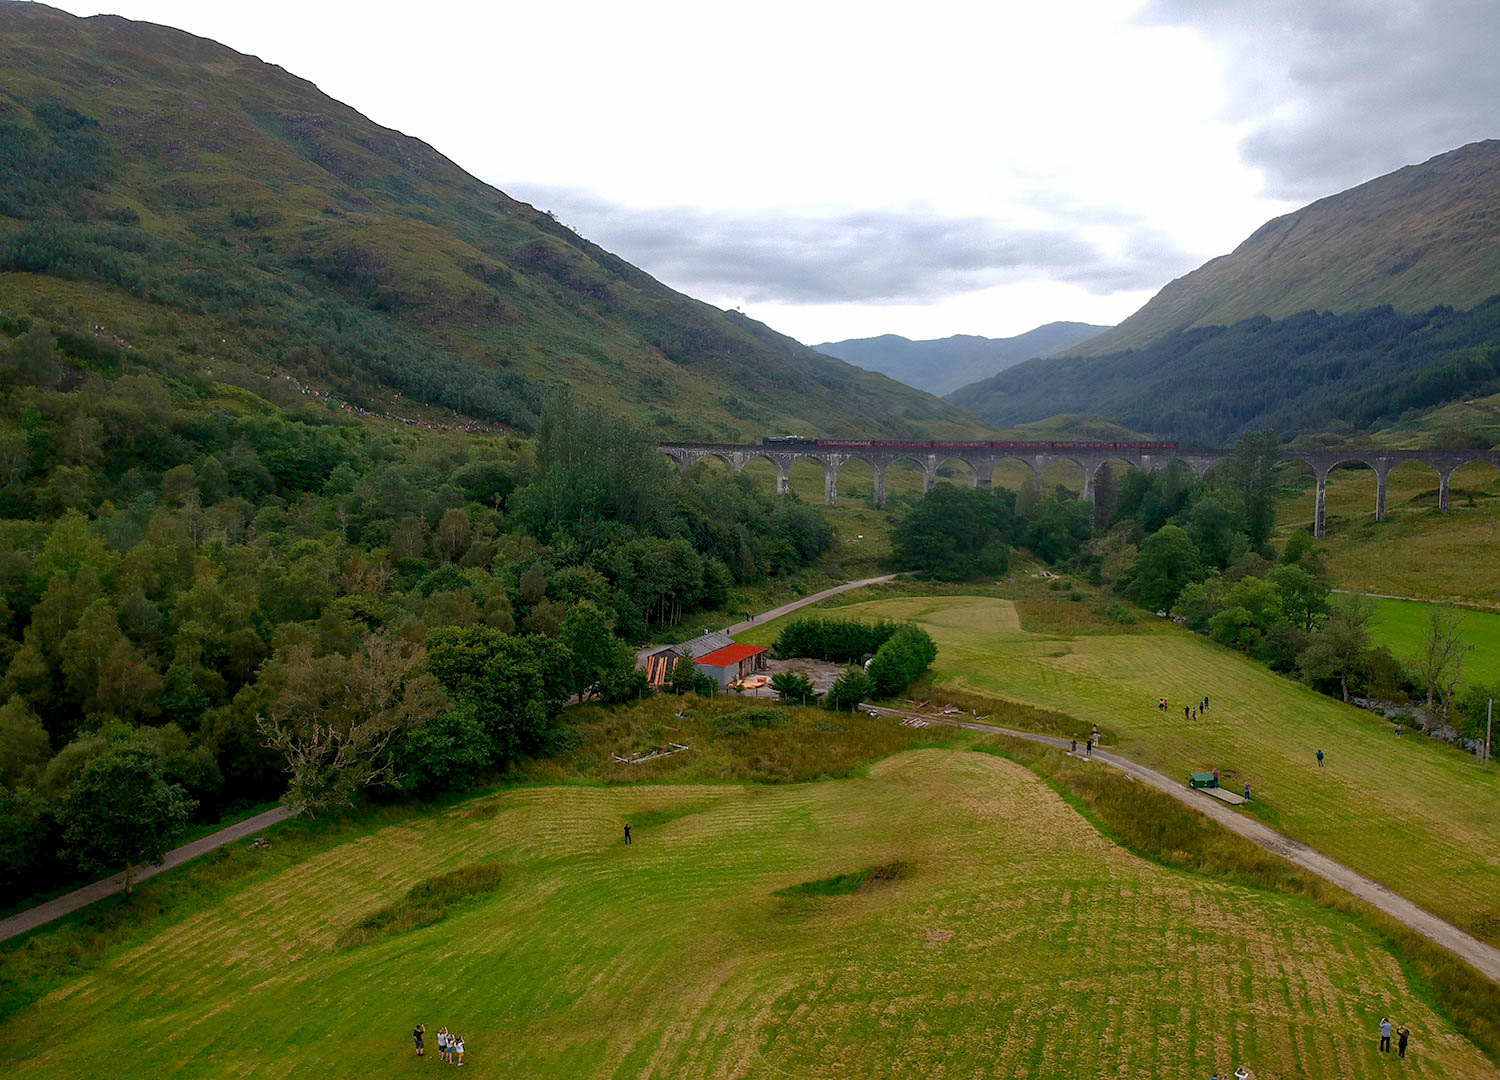 Viewpoints-for-the-Hogwarts-Express-Jacobite-Steam-Train-at-Glenfinnan-Viaduct-Scotland